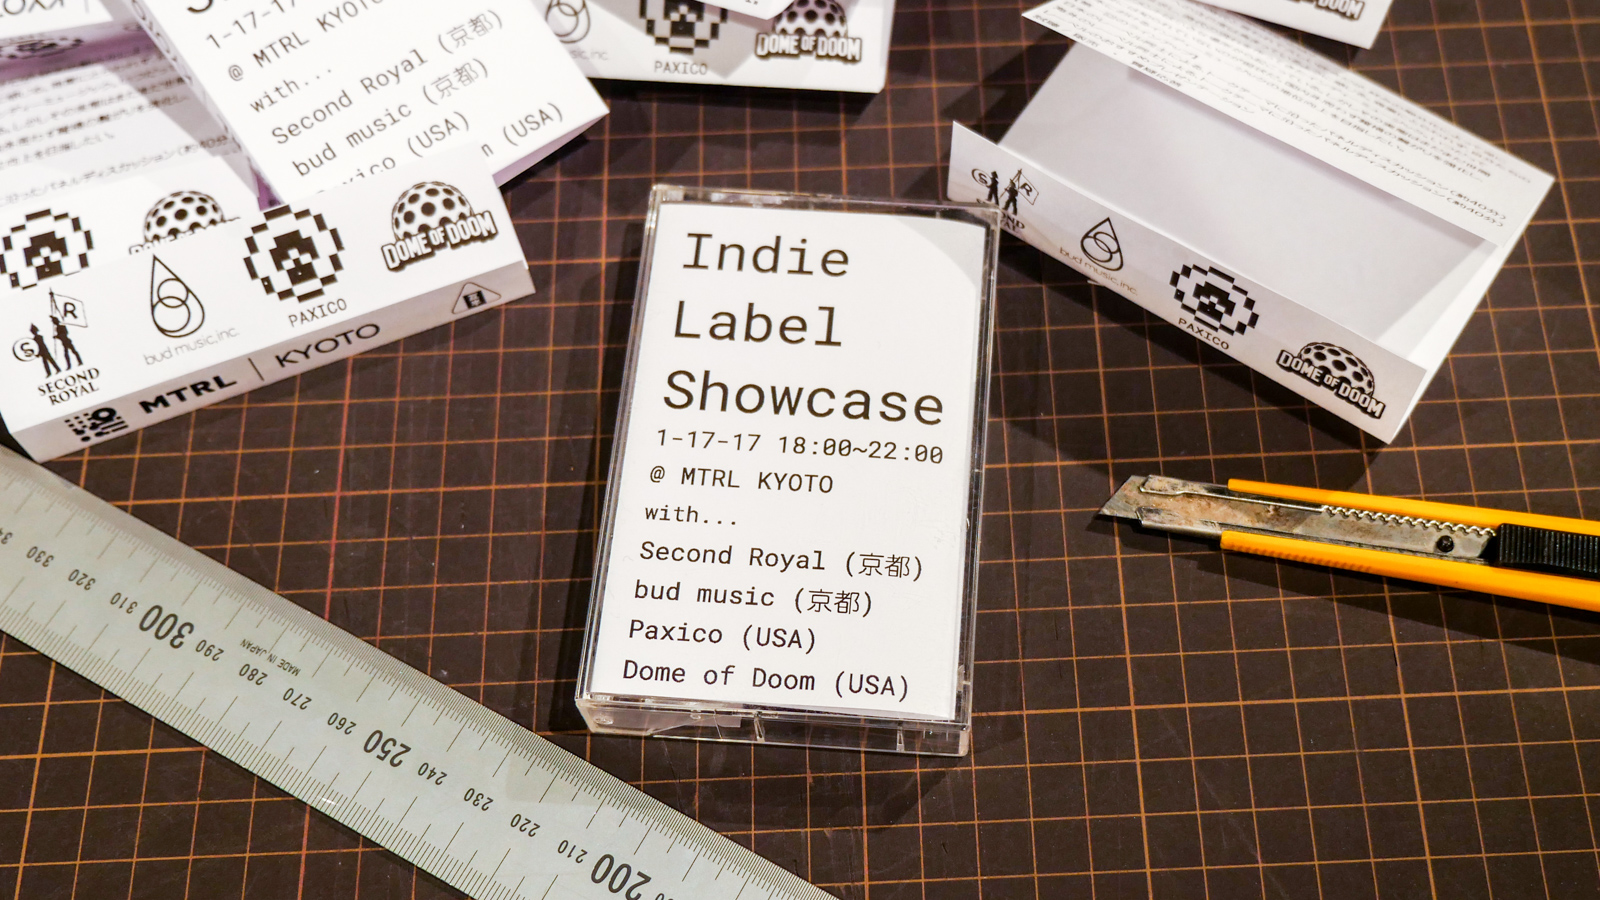 Rather than making a typical flyer, we decided to go with something a little more original and eye-catching. I designed a cassette tape insert with all of the basic information for the event and left them at record stores all around Kyoto.